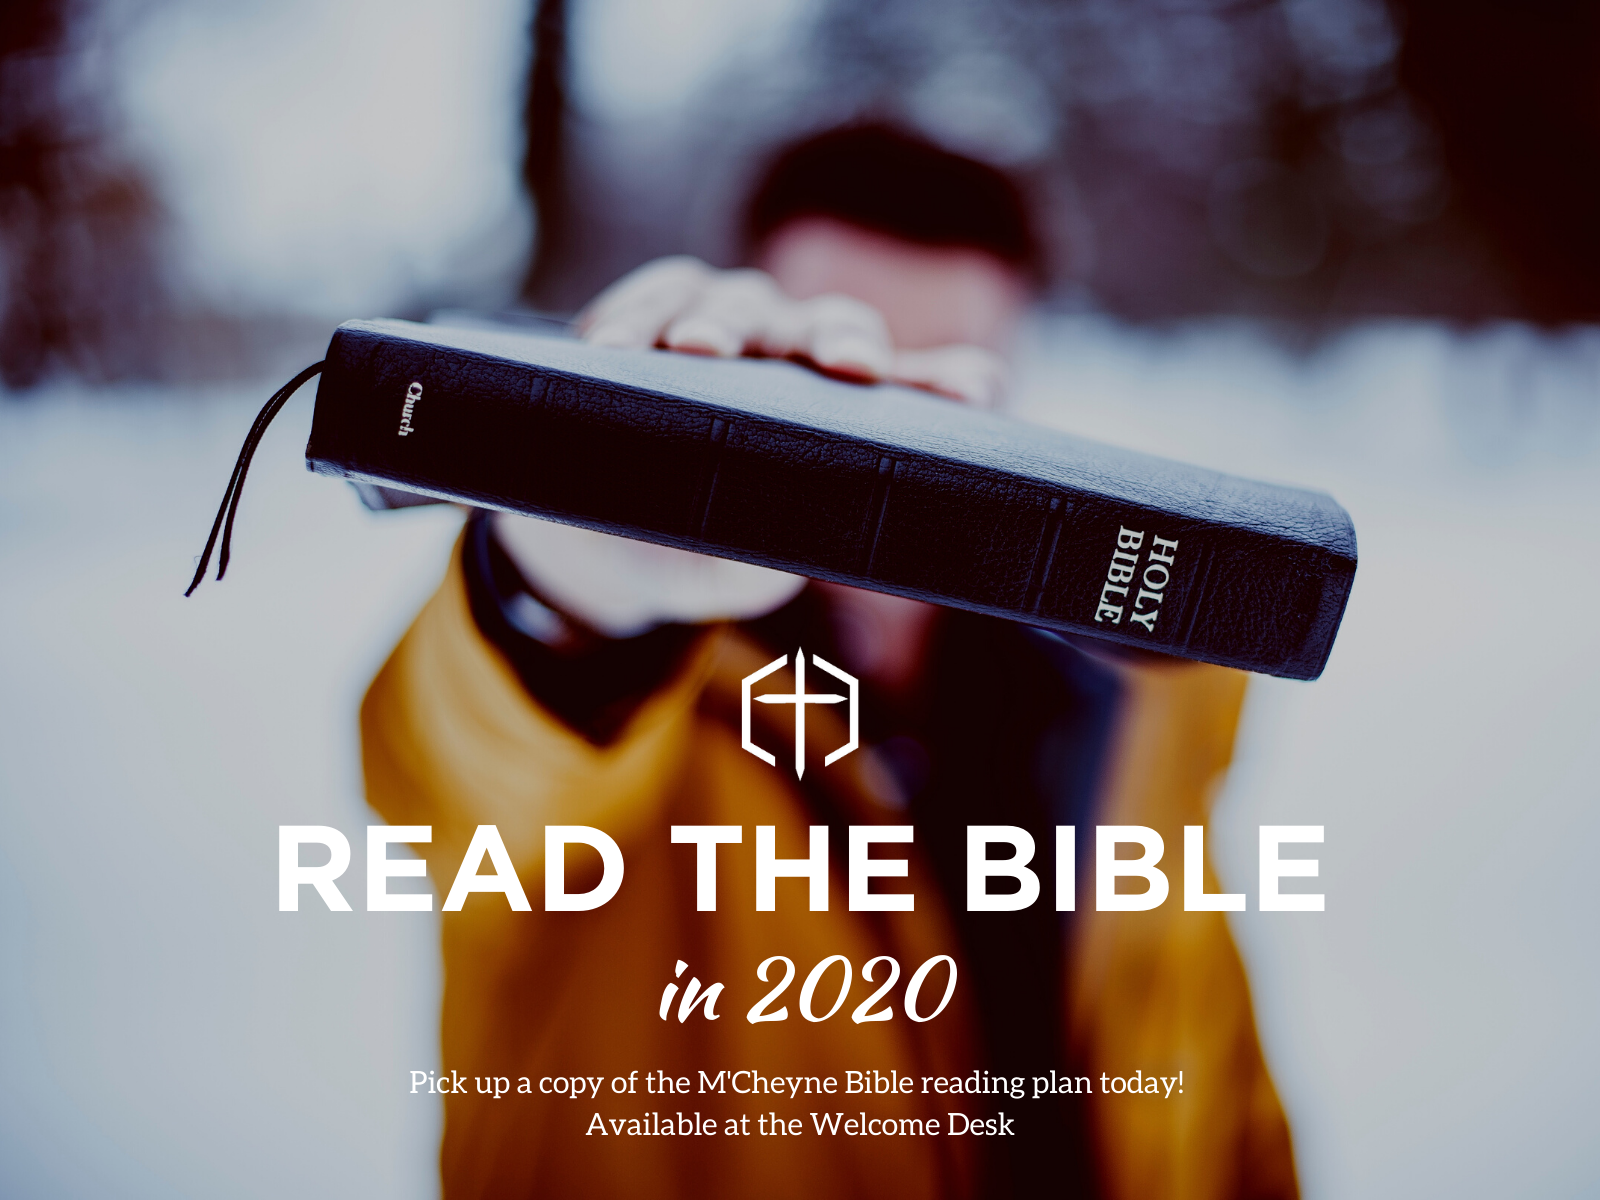 Read The Bible in 2020